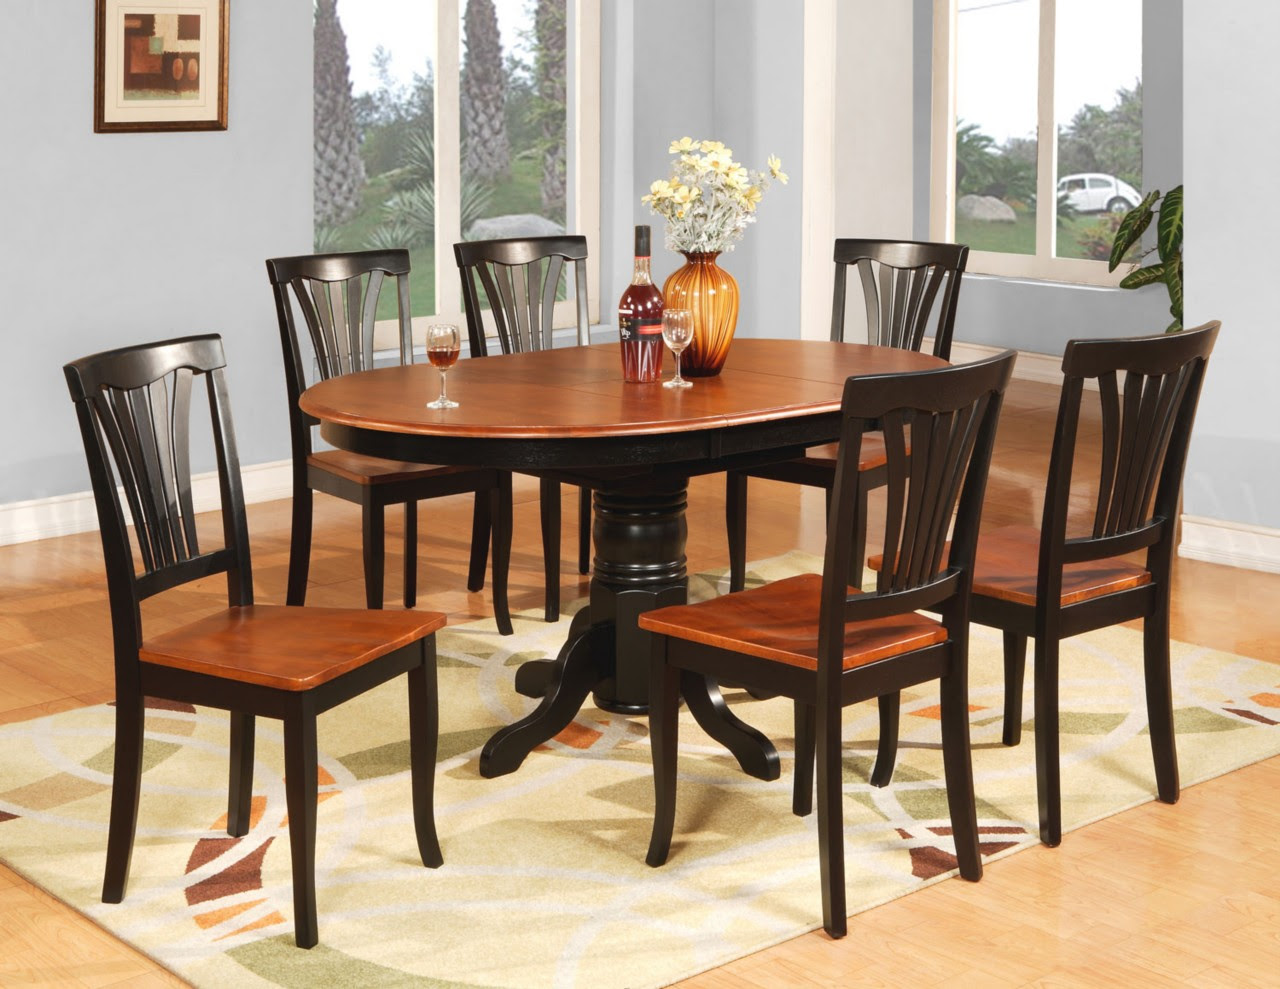 7 PC OVAL DINETTE KITCHEN DINING ROOM TABLE \u0026 6 CHAIRS  eBay